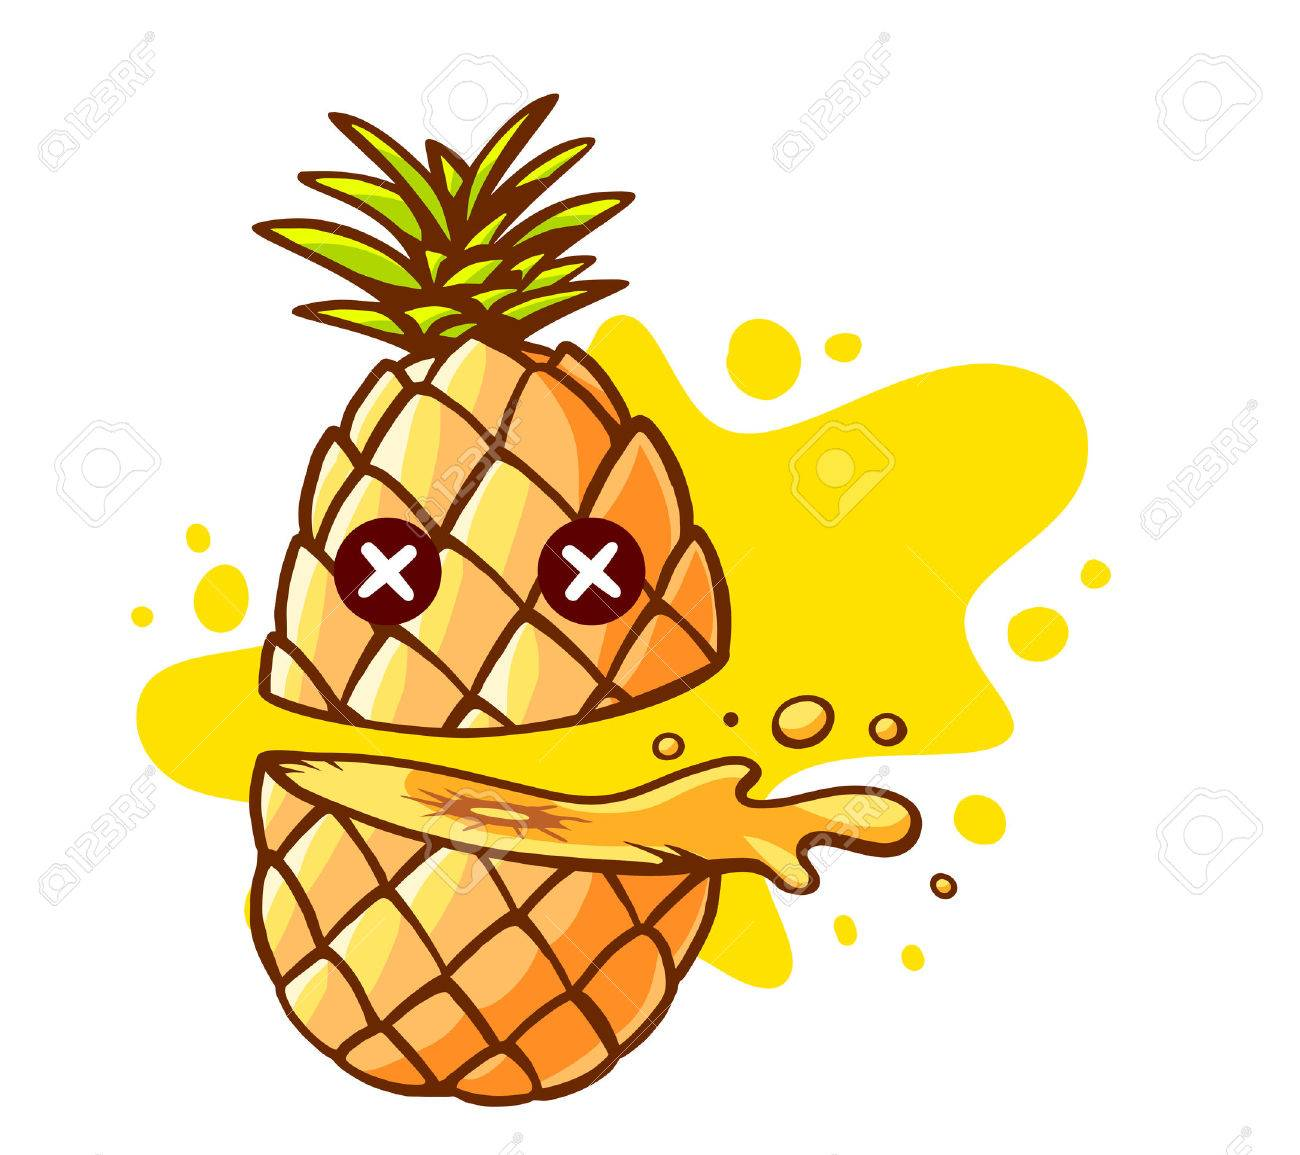 Vector illustration of colorful pineapple cut in half with eyes and yellow spot on white background. Hand draw line art design for web, site, advertising, banner, poster, board and print. - 43888274